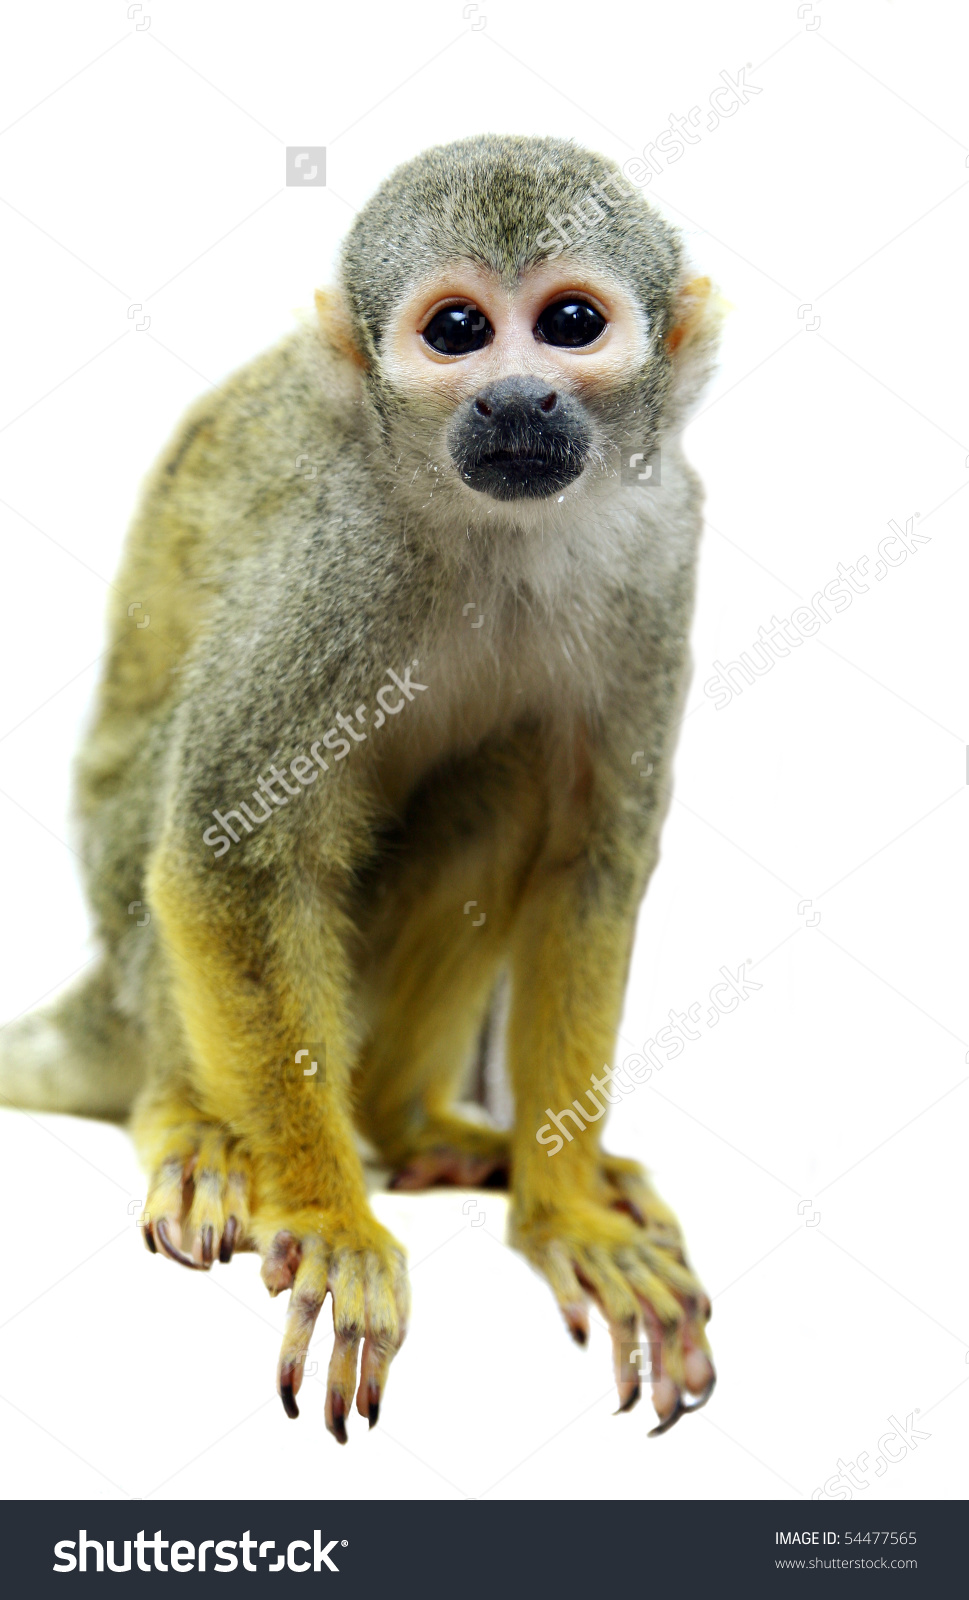 Squirrel Monkey clipart #8, Download drawings